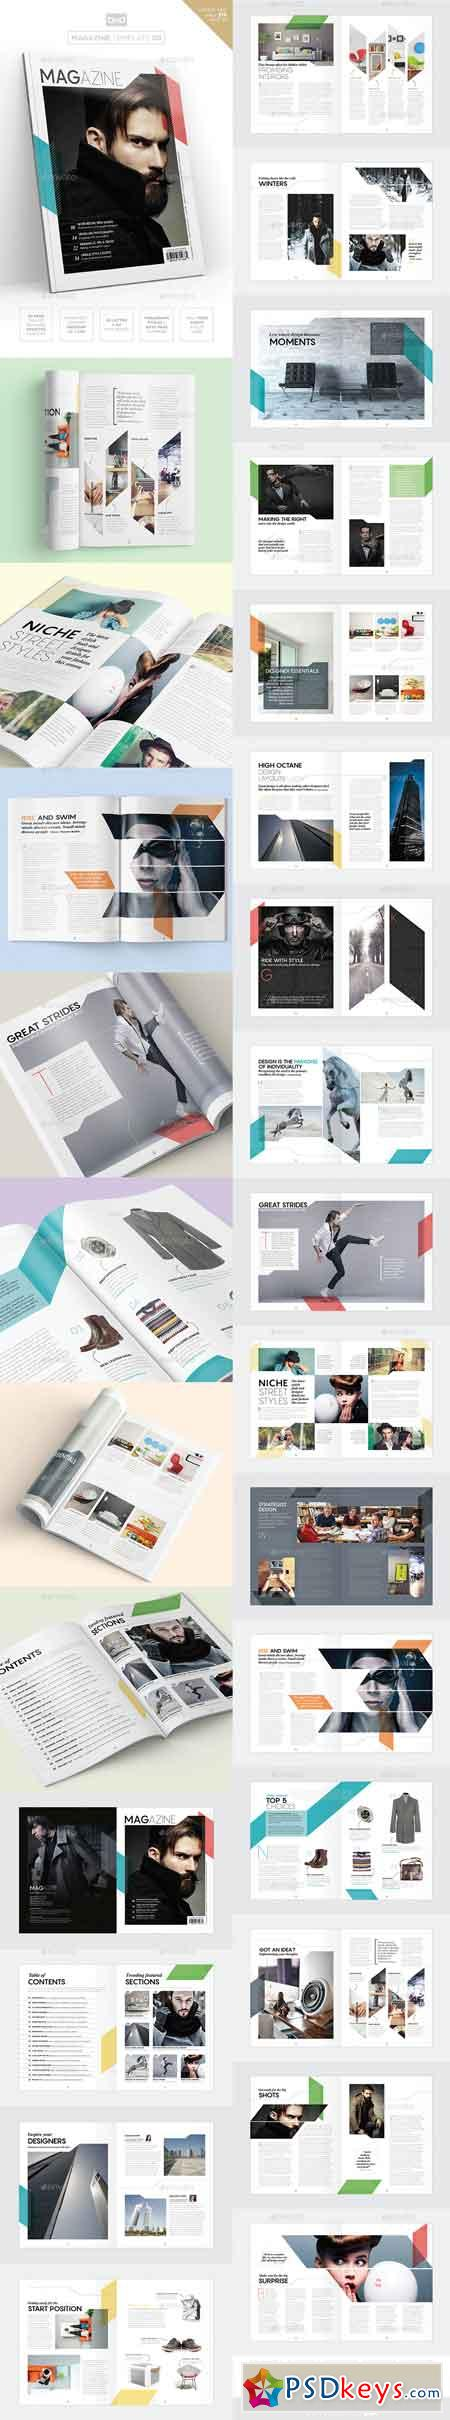 Magazine Template - InDesign 40 Page Layout V9 19303645